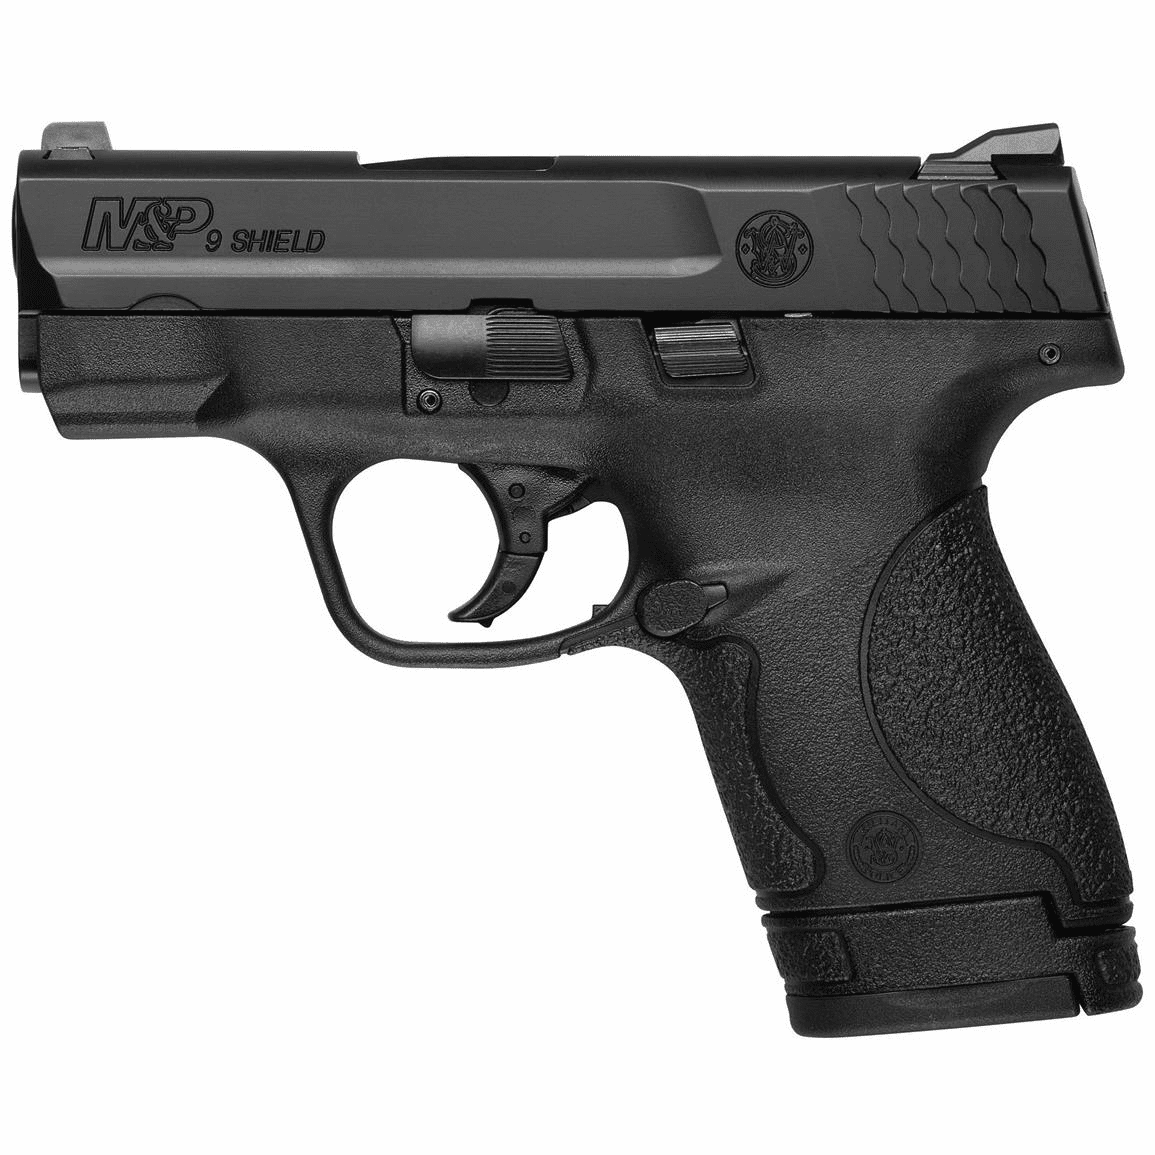 M&P 9 Shield (9mm) NTS or TS